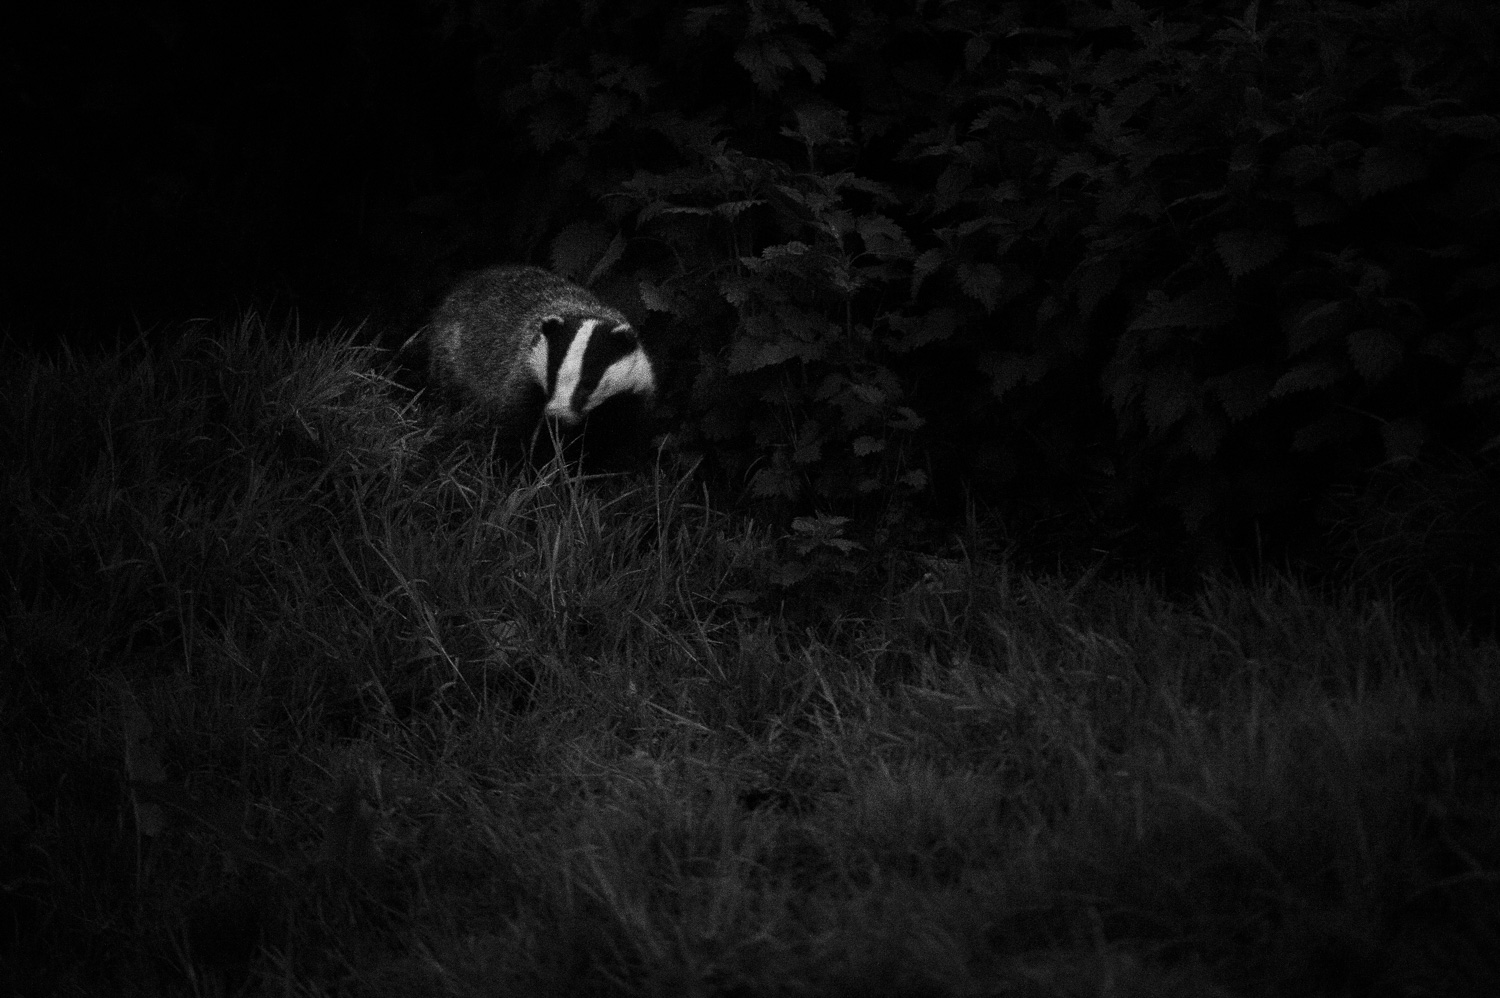 Twilight Badger